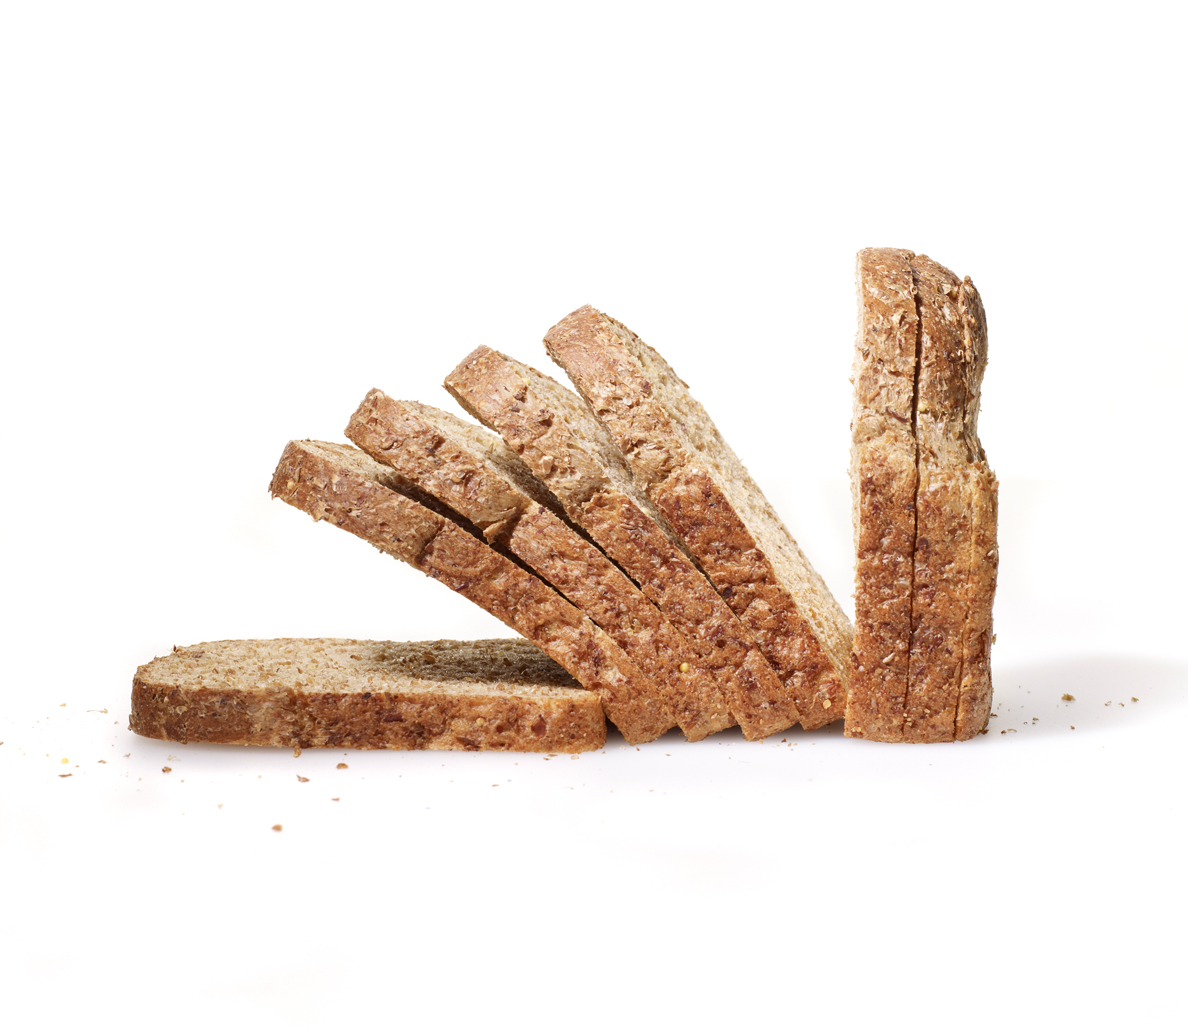 Healthy breads: The Healthiest Types of